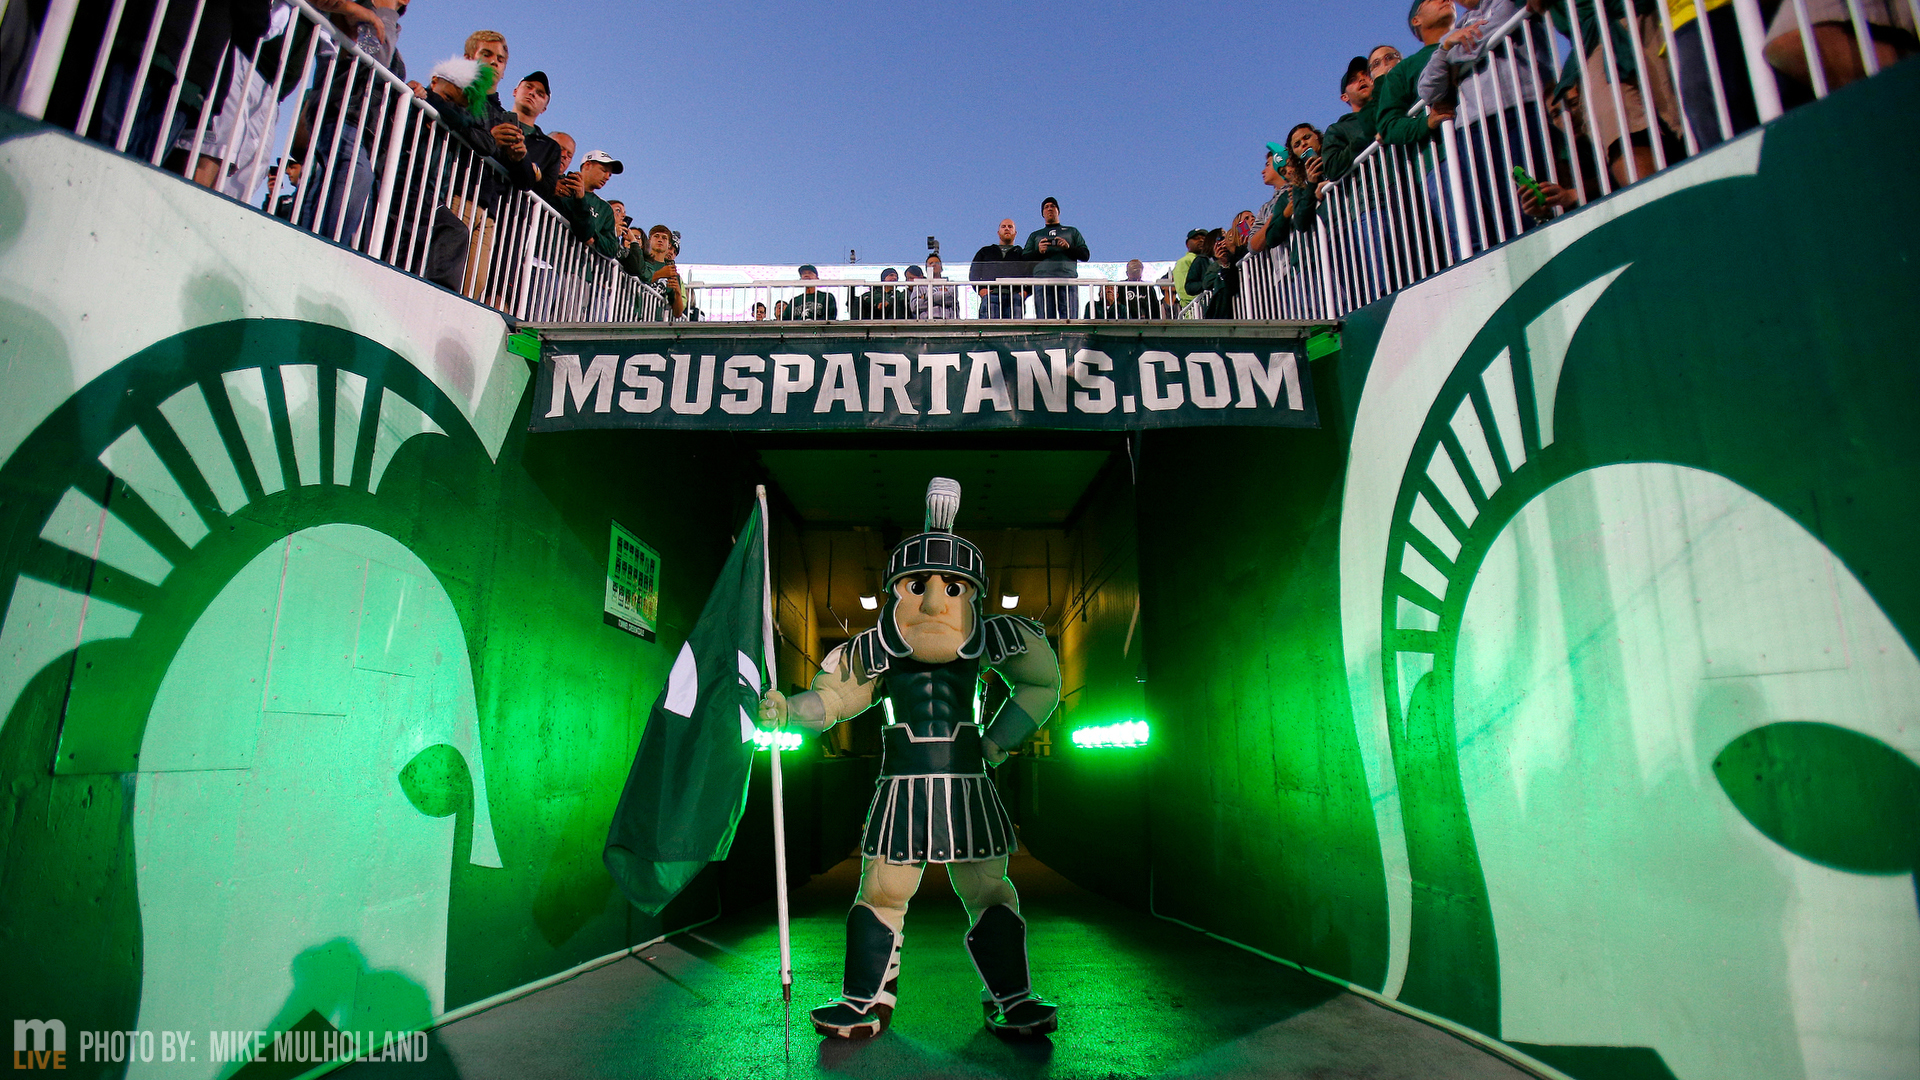 michigan state football lands first 2022 commit from georgia ol mlive com mlive com